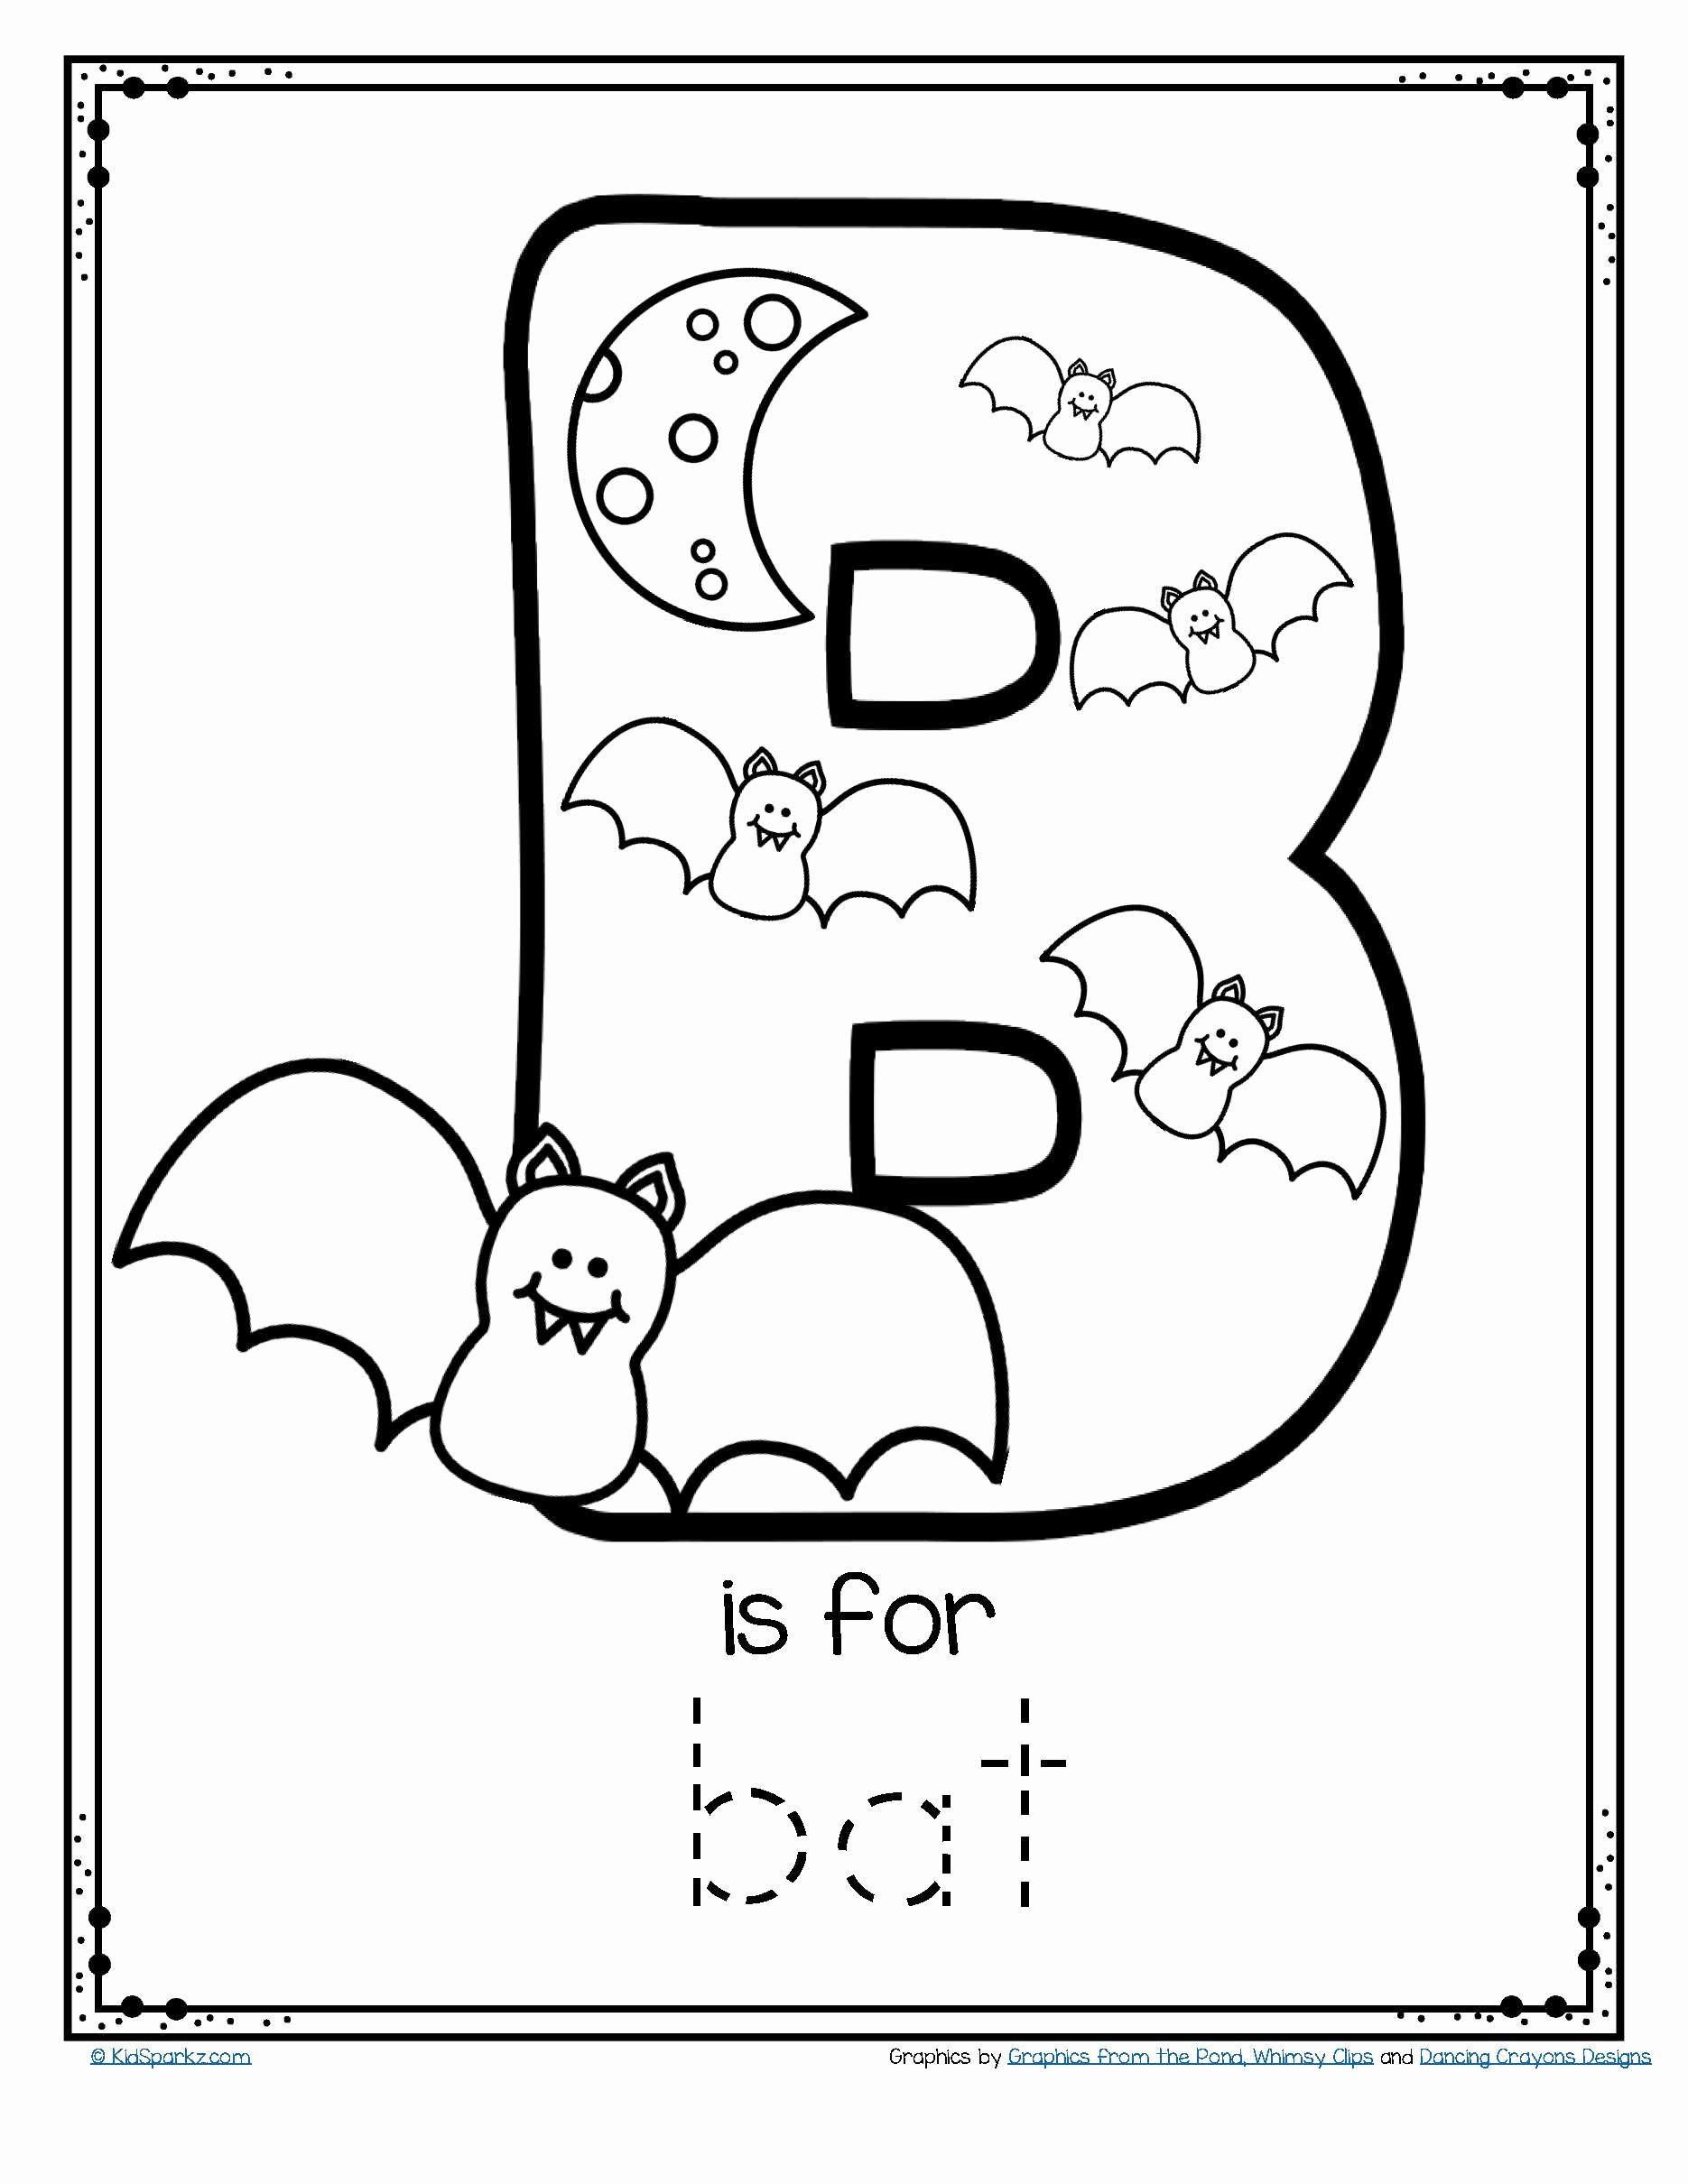 Free Kumon Printable Worksheets for Preschoolers New Free Alphabet Tracing and Coloring Printable is for the